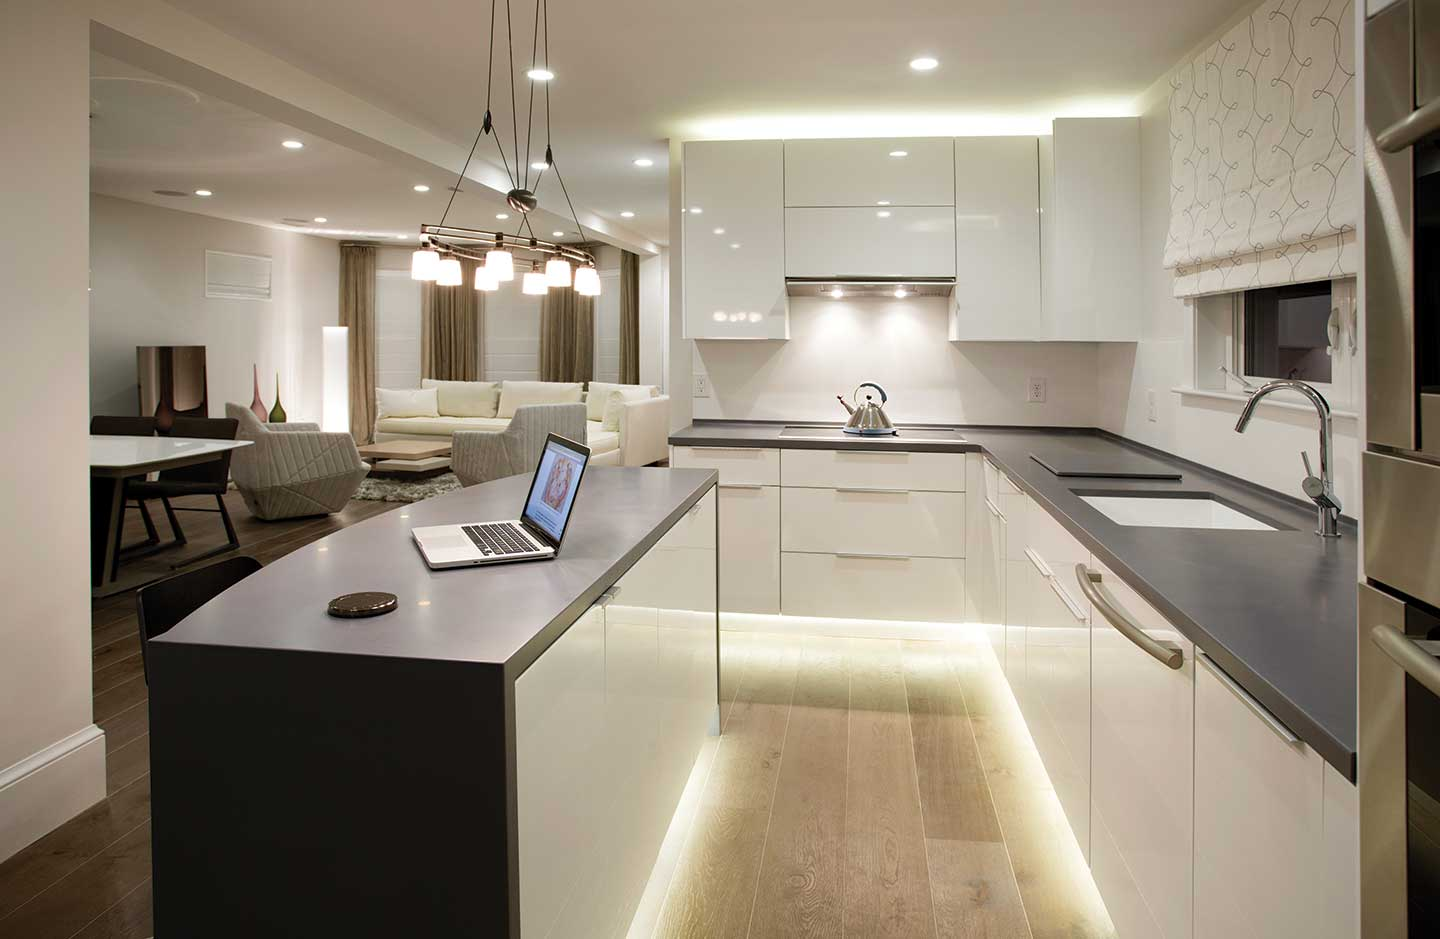 Porcelanosa Kitchen Cabinets Porcelanosa Is A One Stop Shop And Not Just For Tile Jersey Digs